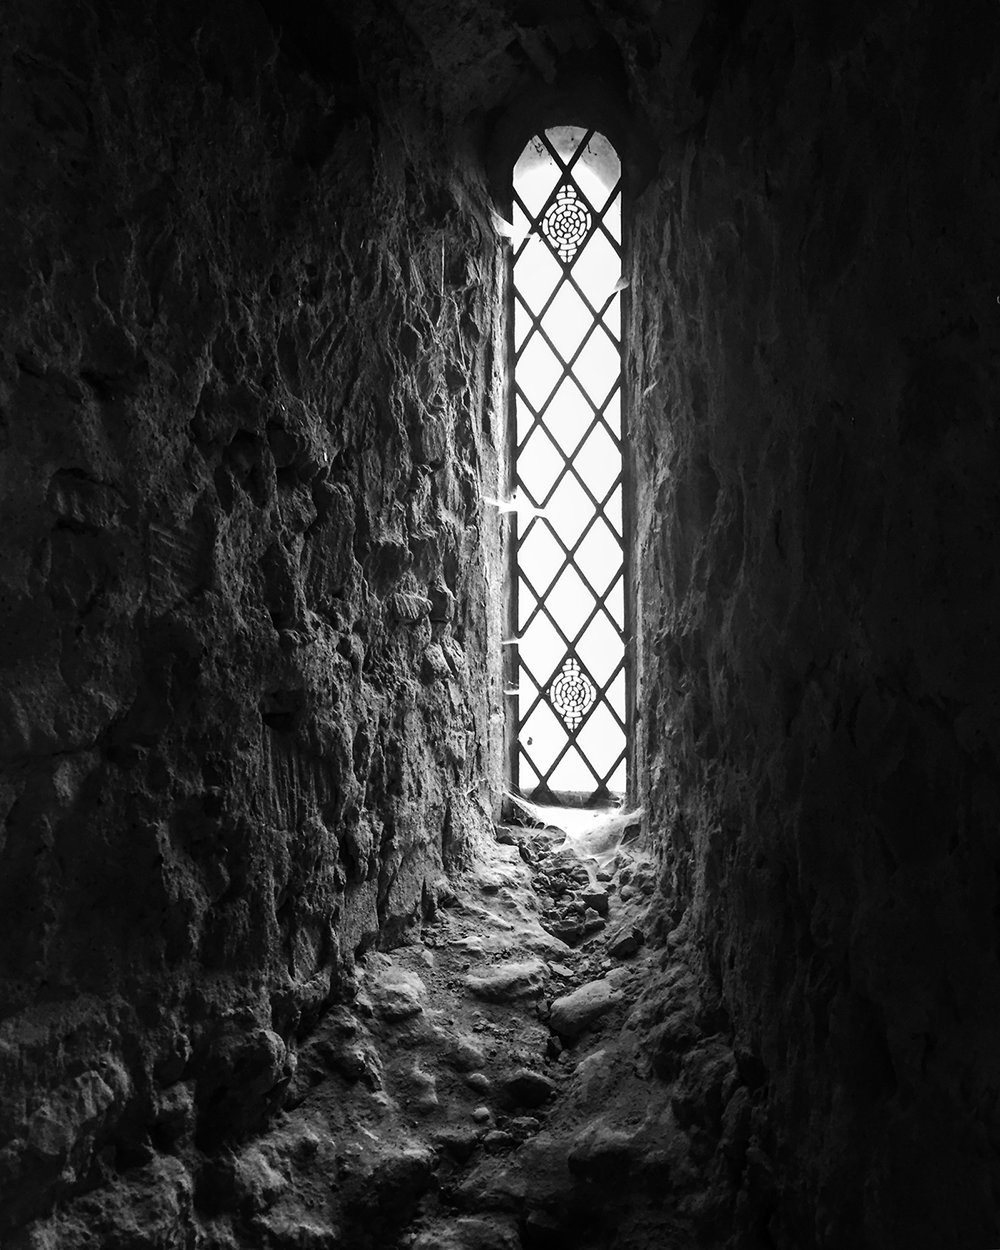 IMG_2208 church window BW web gallery.jpg